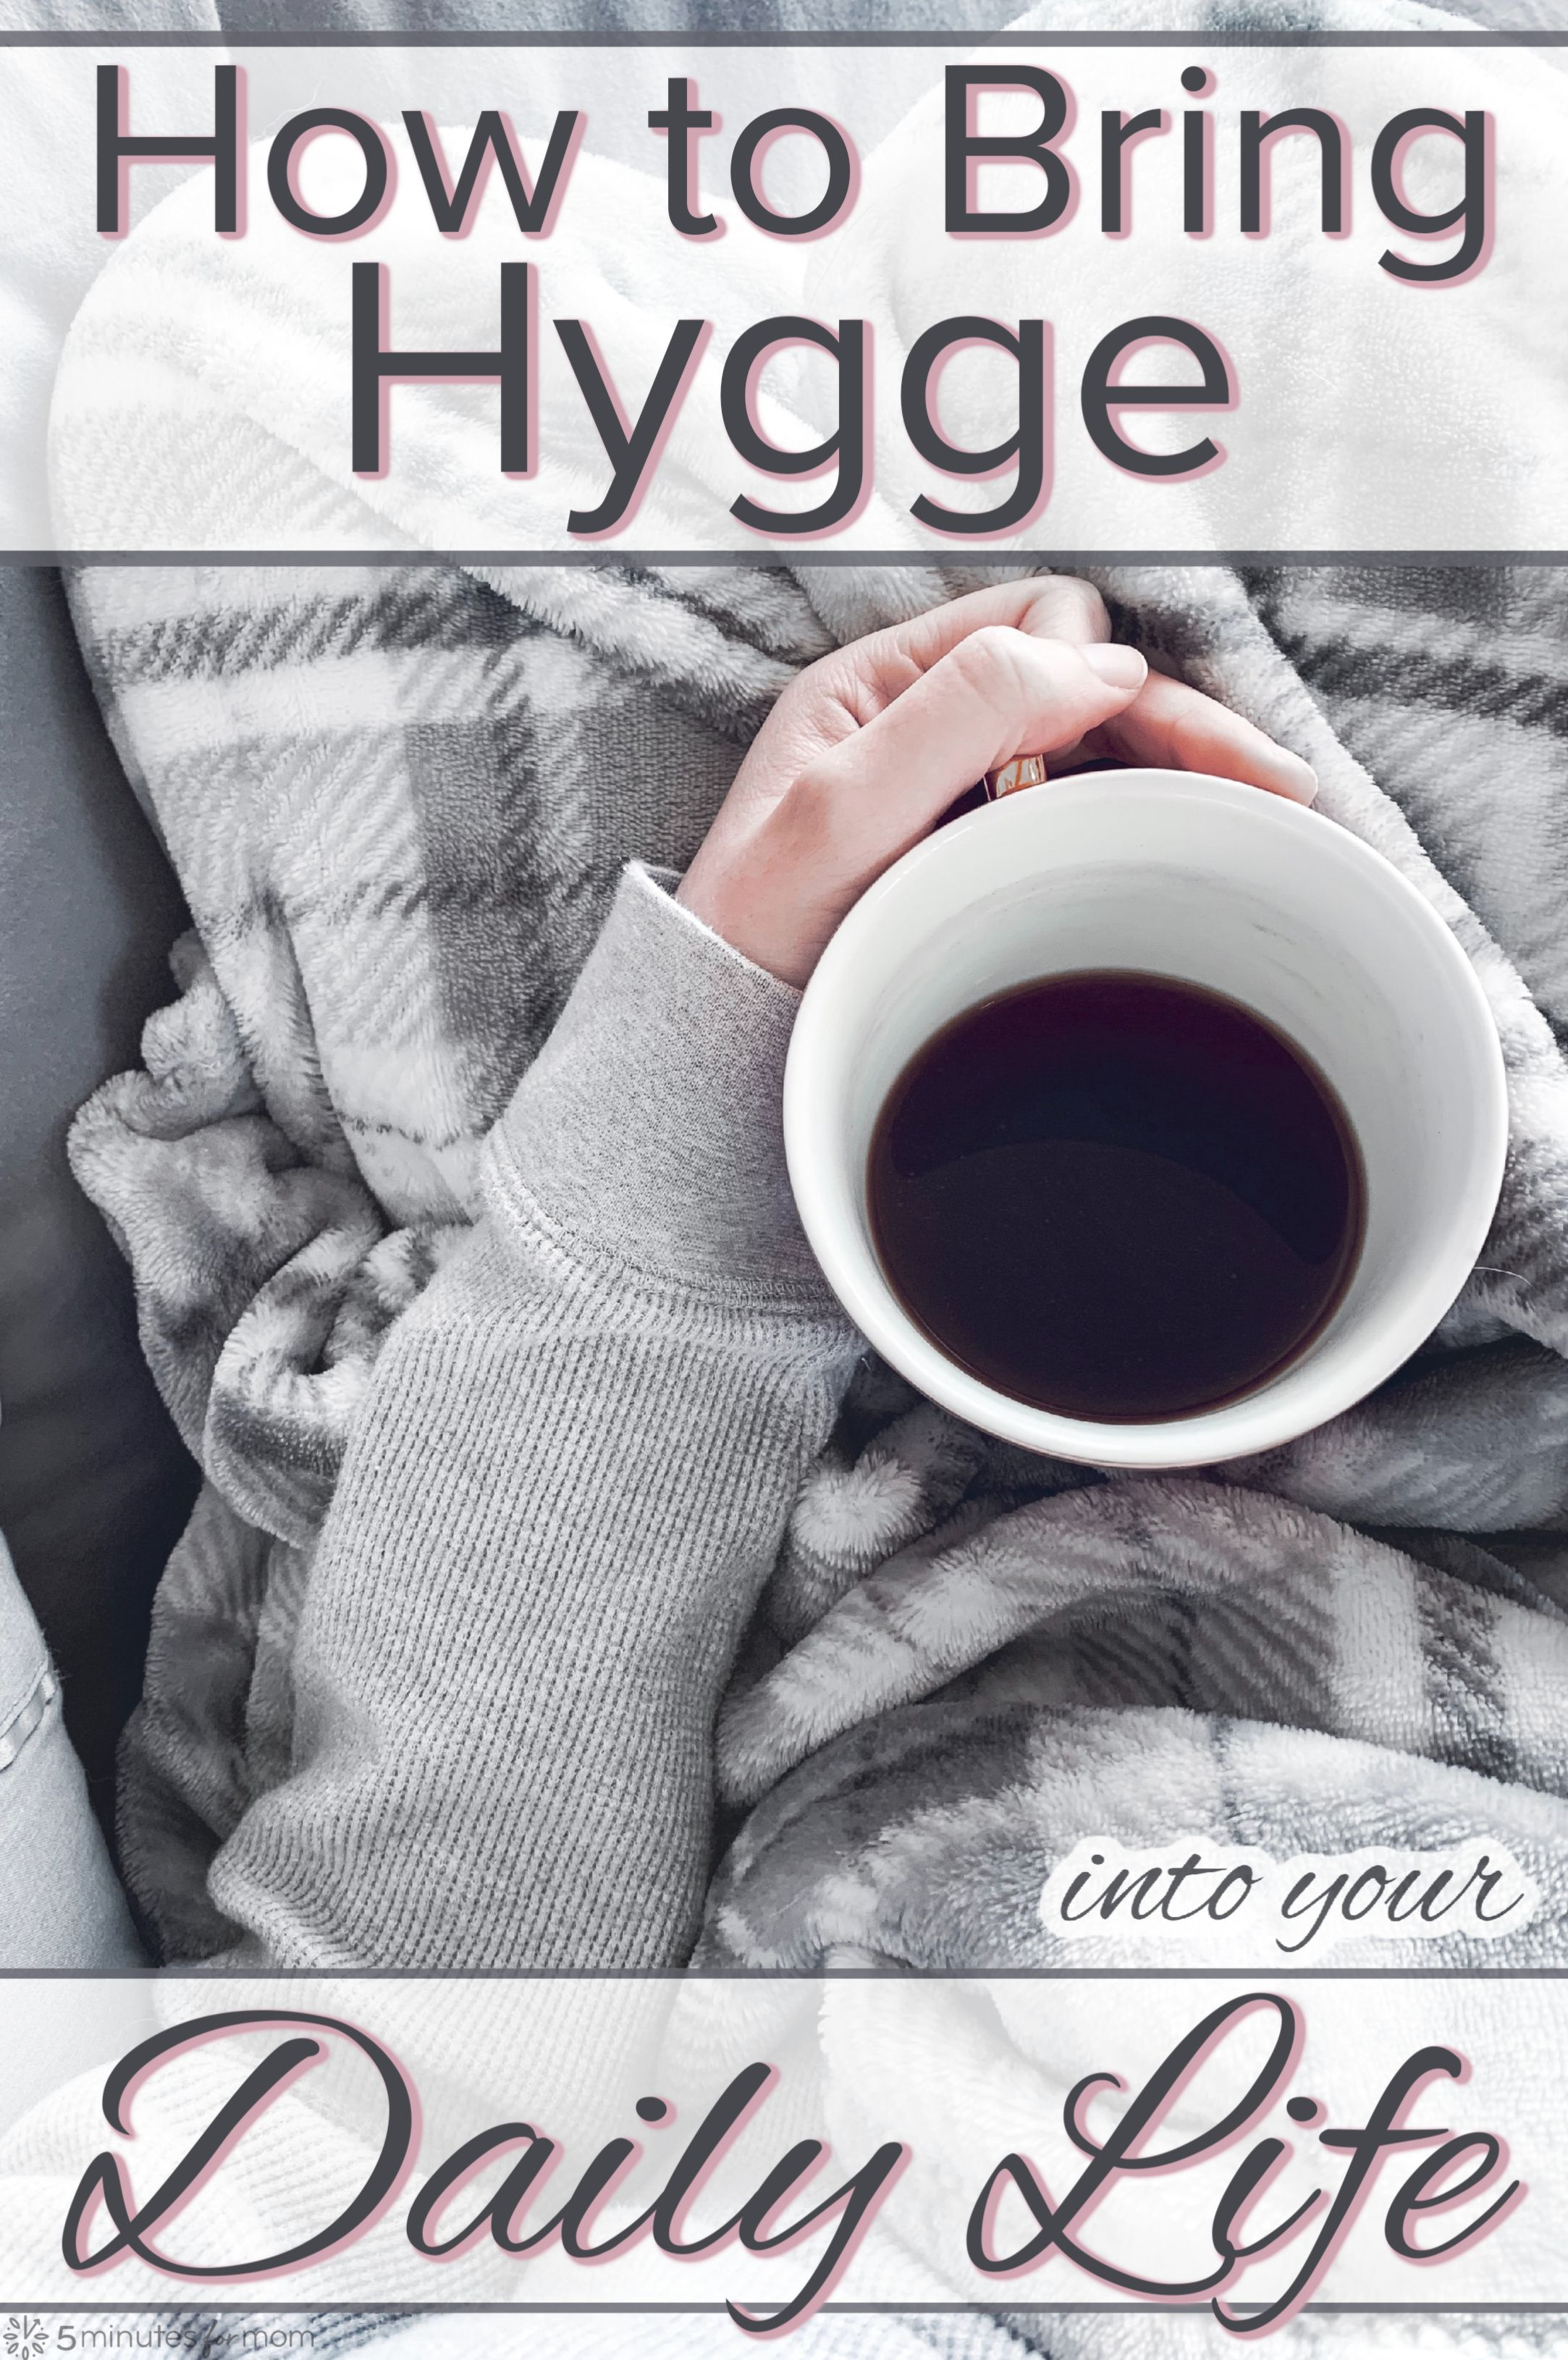 How To Bring Hygge Into Your Daily Life In 2020 How To Pronounce Hygge Hygge Daily Life